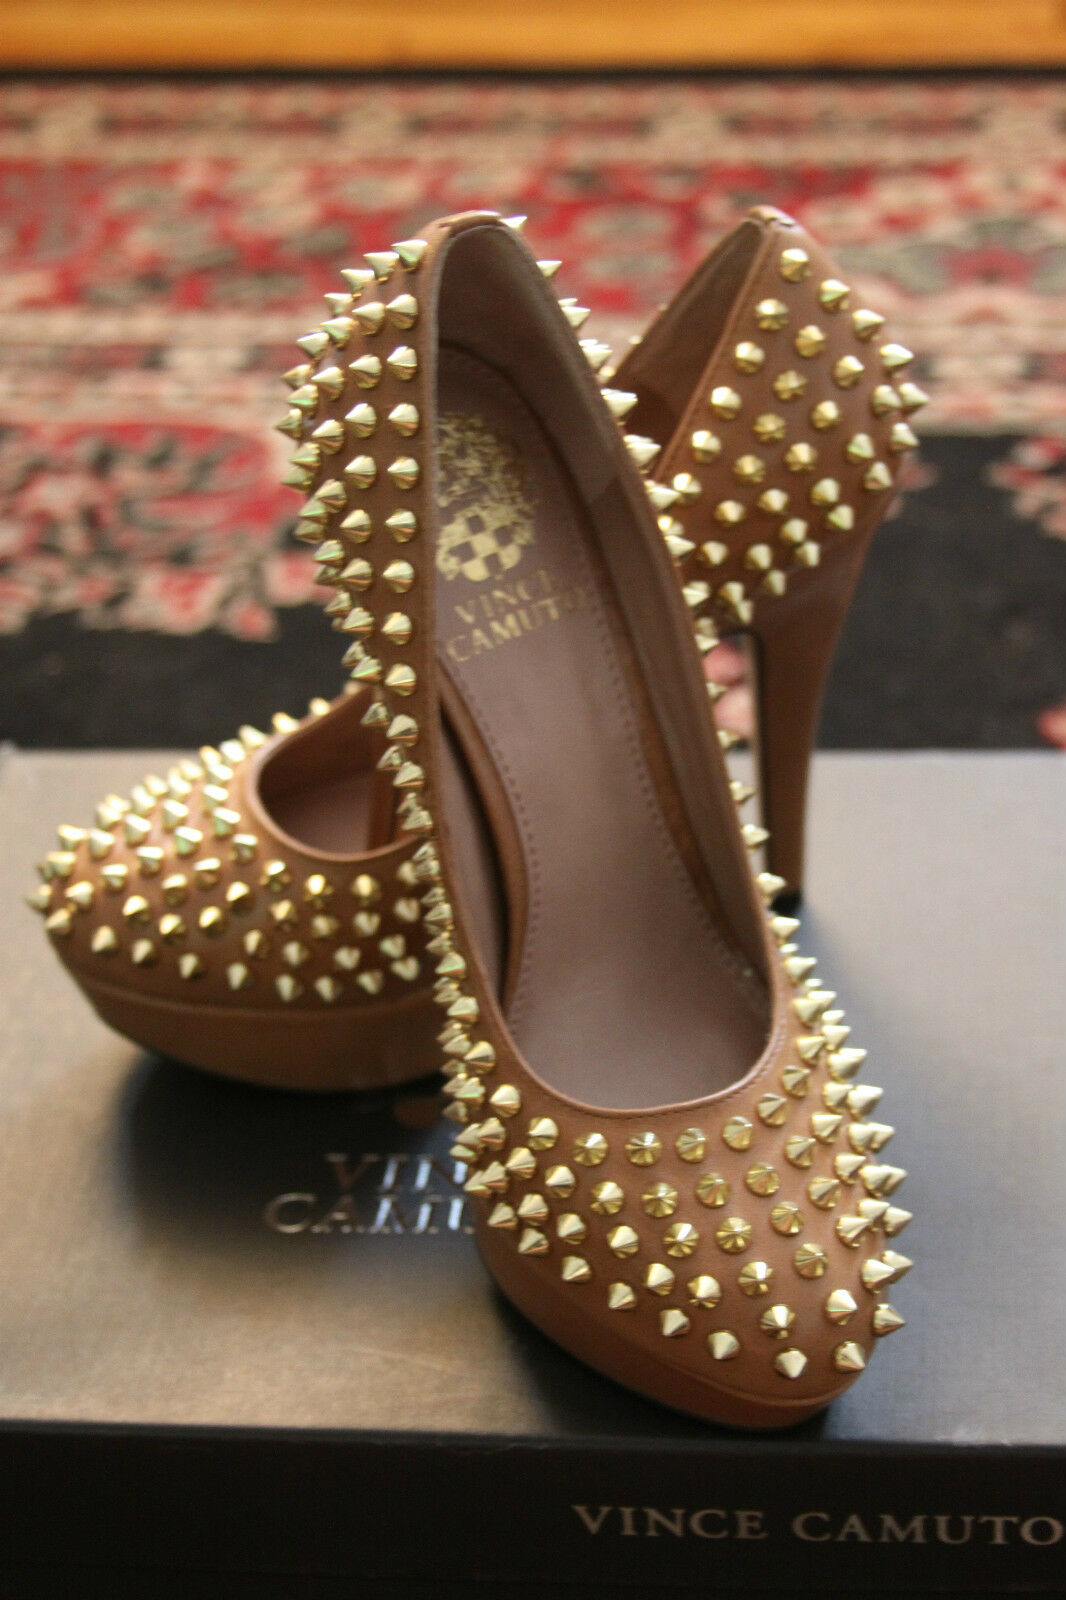 VINCE CAMUTO VC-MADELYN STUD-DETAIL IN BROWN LEATHER GOLD STUD-DETAIL VC-MADELYN PUMP SIZE 6M 558972